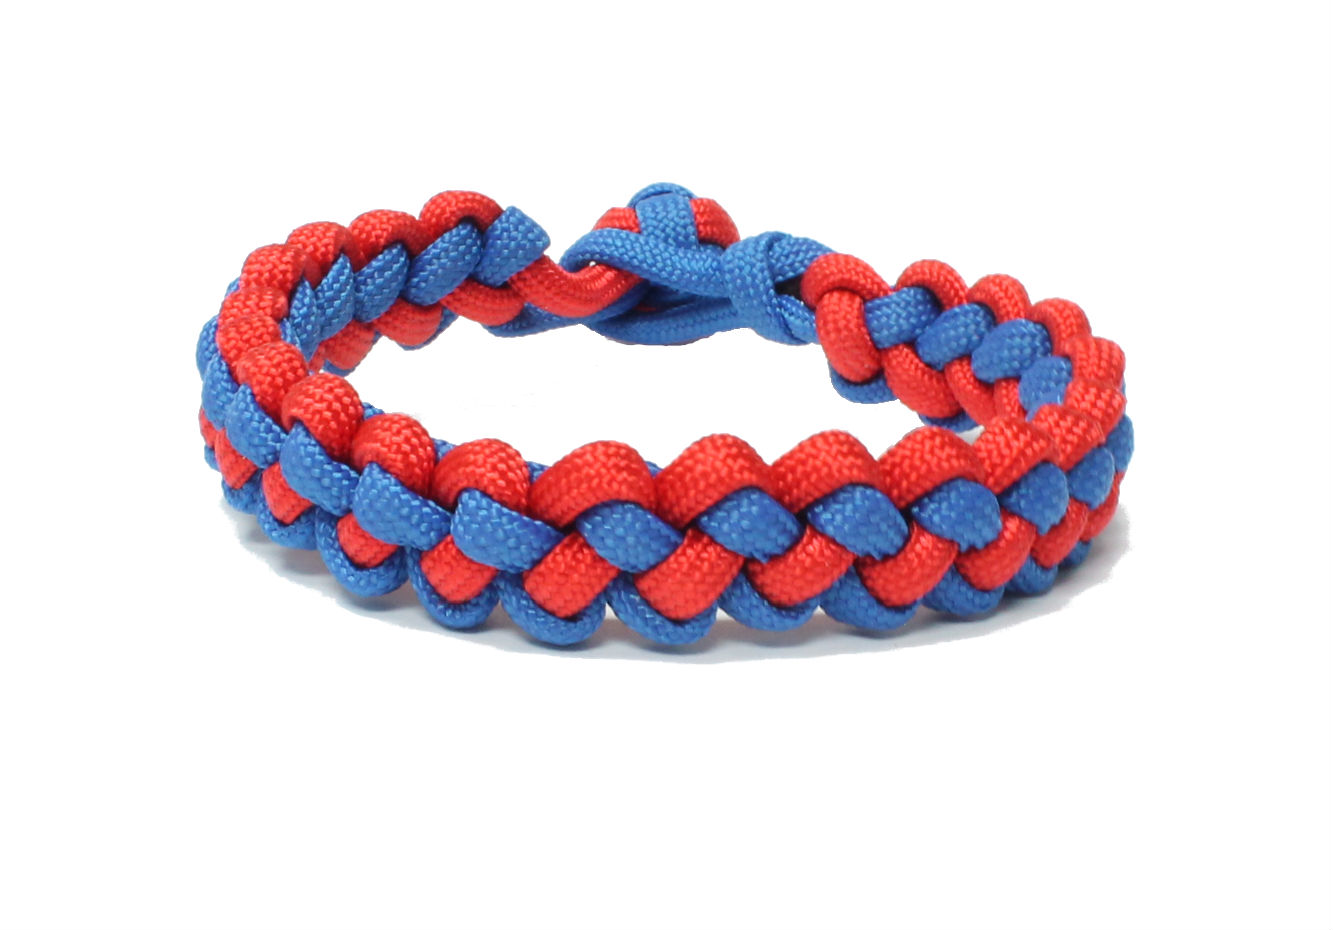 Paracord Braiding Patterns Magnificent Design Ideas